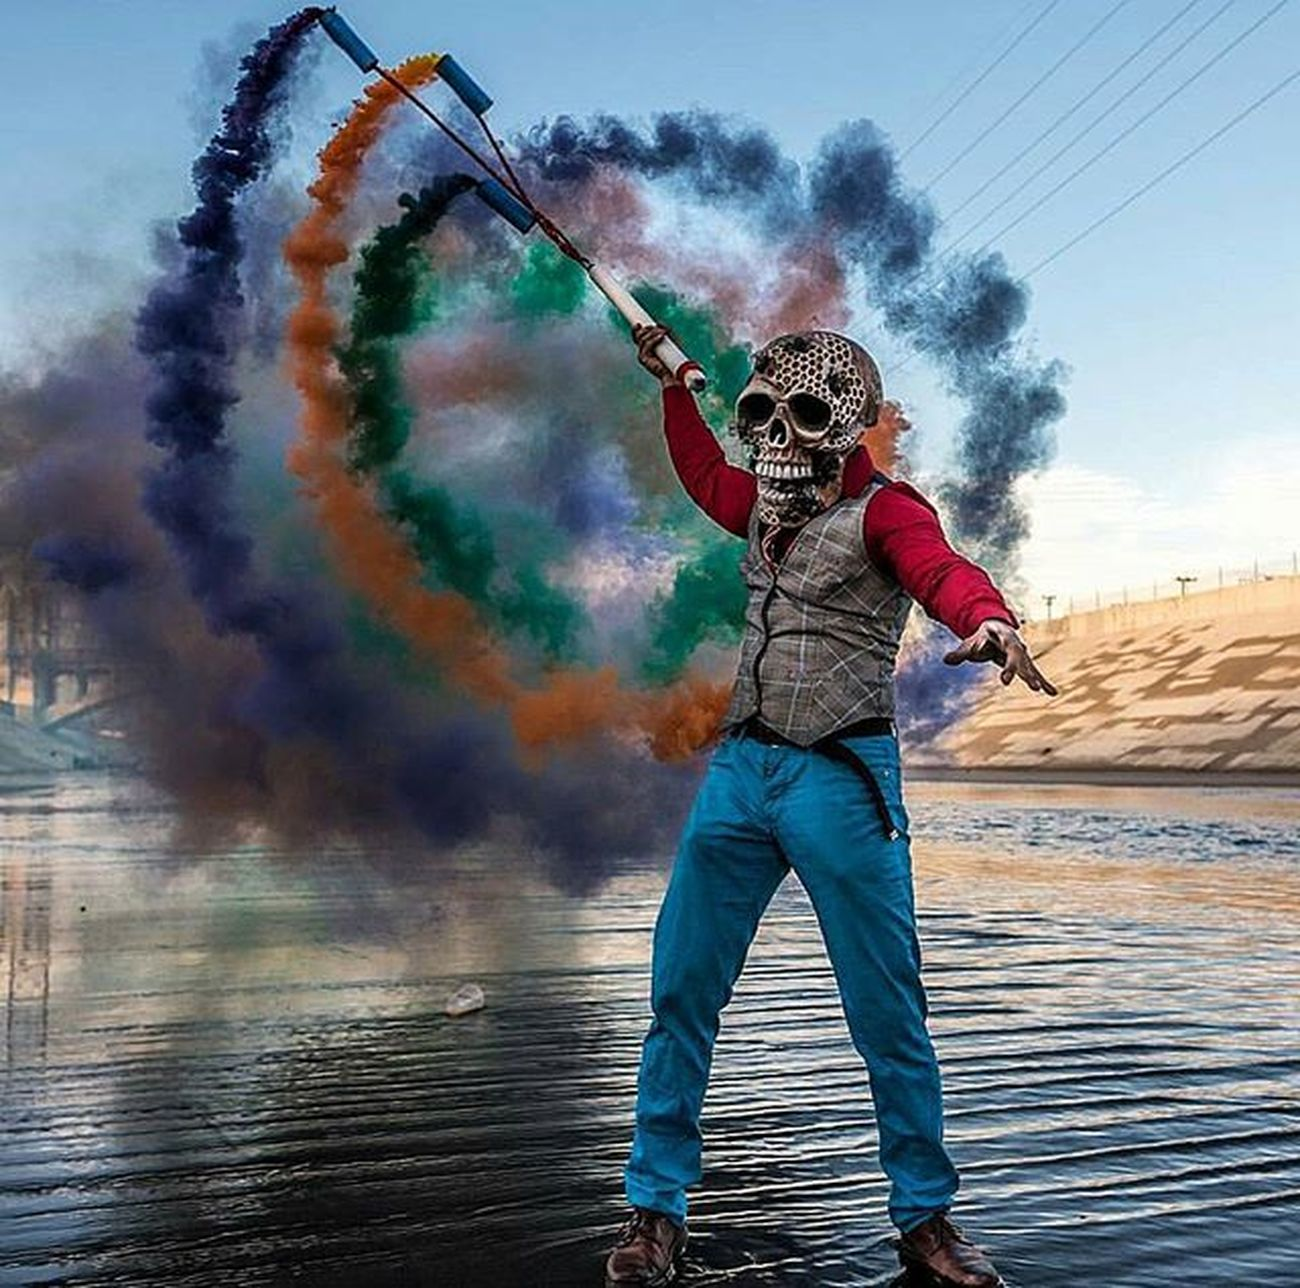 📷 images: @butch_locsin_from_la photographer: @d.clarke.photography ----------------------------------------------------------- Skull Smokebomb Colorful Colors Epic Instagram Awesome Water Smokecolor Tagsforlikes Likes Smoke Colors StreetActivity Success Streetmobs Streetstyle Skullmask Enjoy Moodygrams Smokestoreid Sugarskull Mask Follow Picture lifeanddeath street facelessminds magazine colorbomb photo @awesome_pixels @exaperture